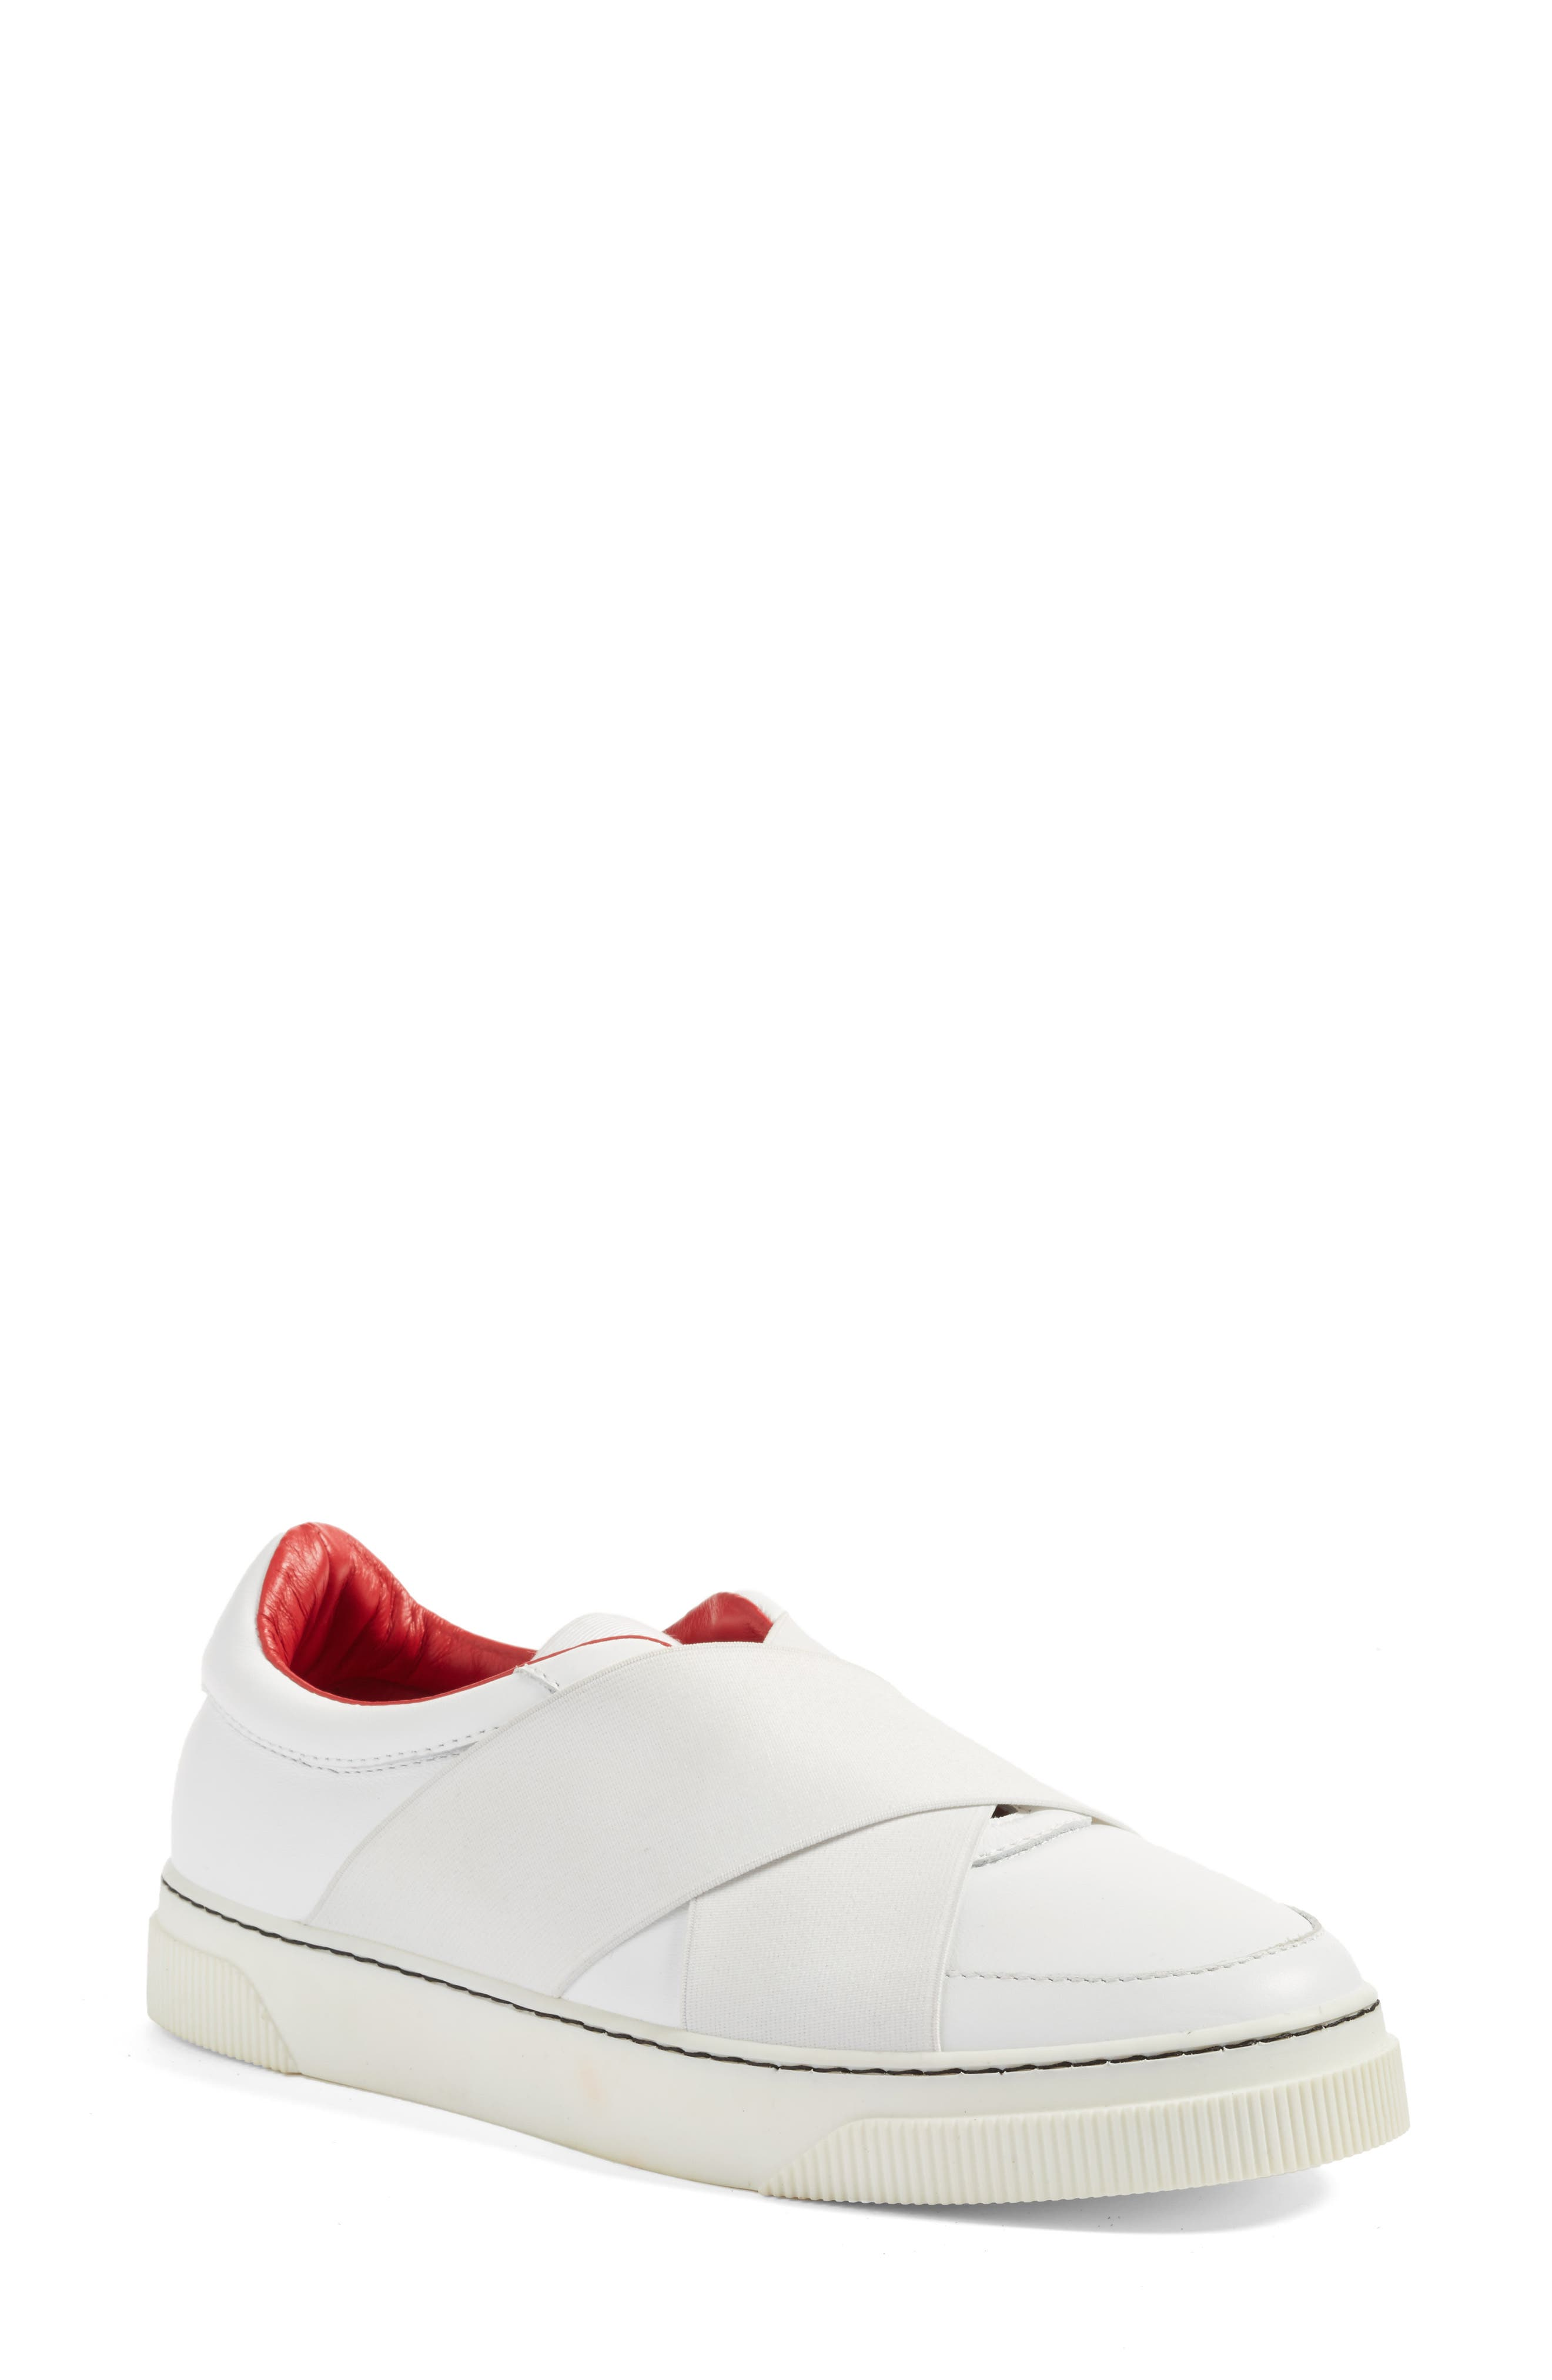 Proenza Schouler Crisscross Slip-On Sneaker (Women)